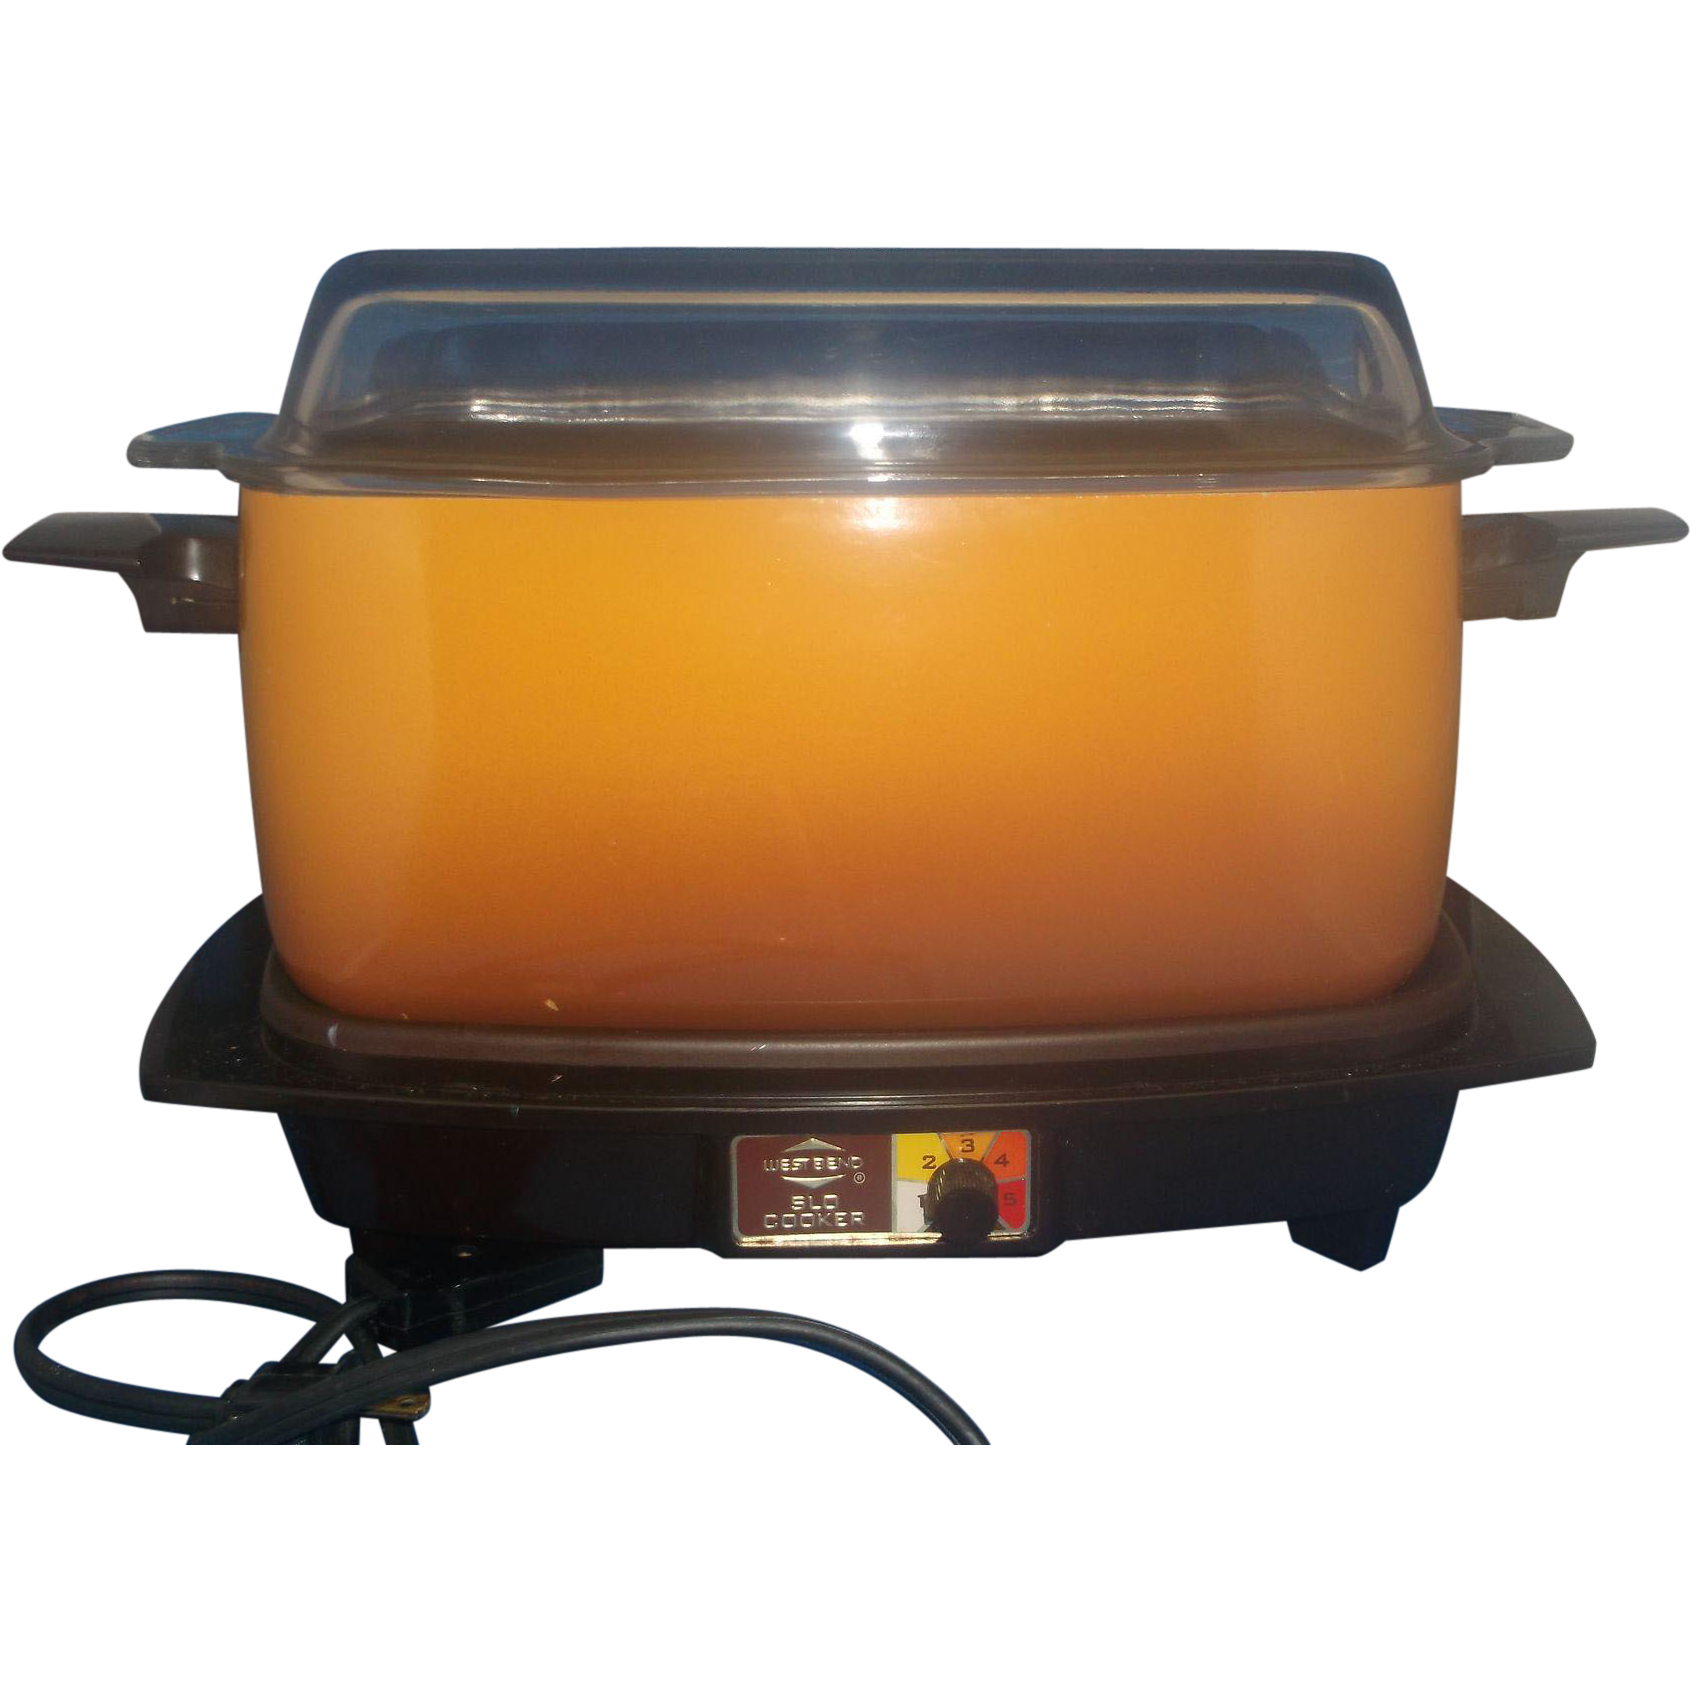 Vintage West Bend Harvest Gold and Brown Model 5275 4 Quart Slow Slo Cooker Hot Plate Griddle